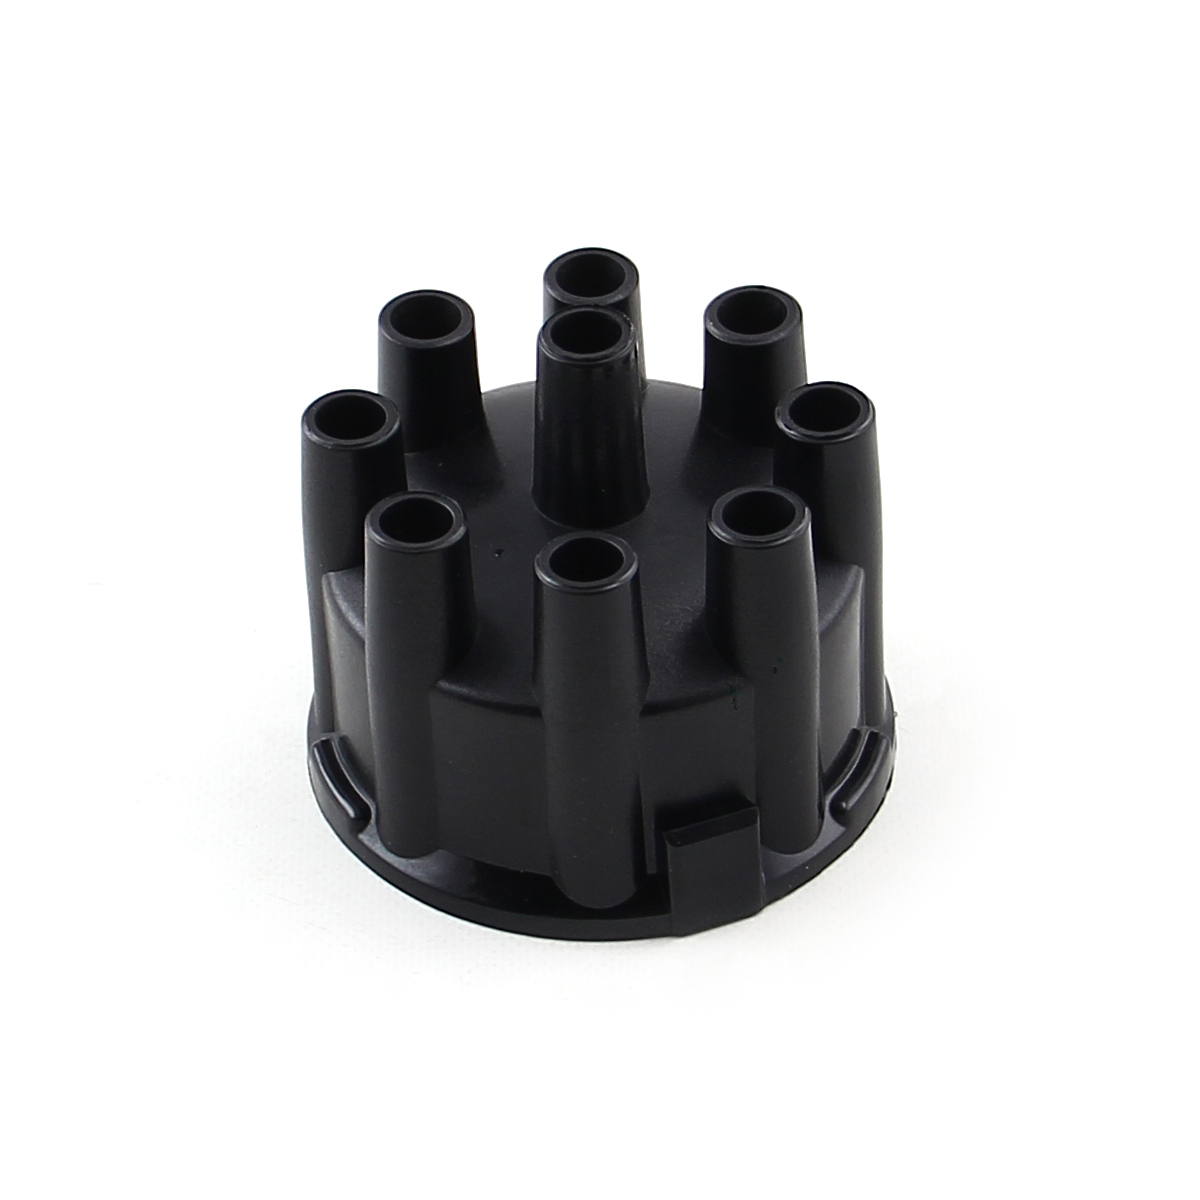 7000 and 8000 Series Female Std Distributor Cap - Black